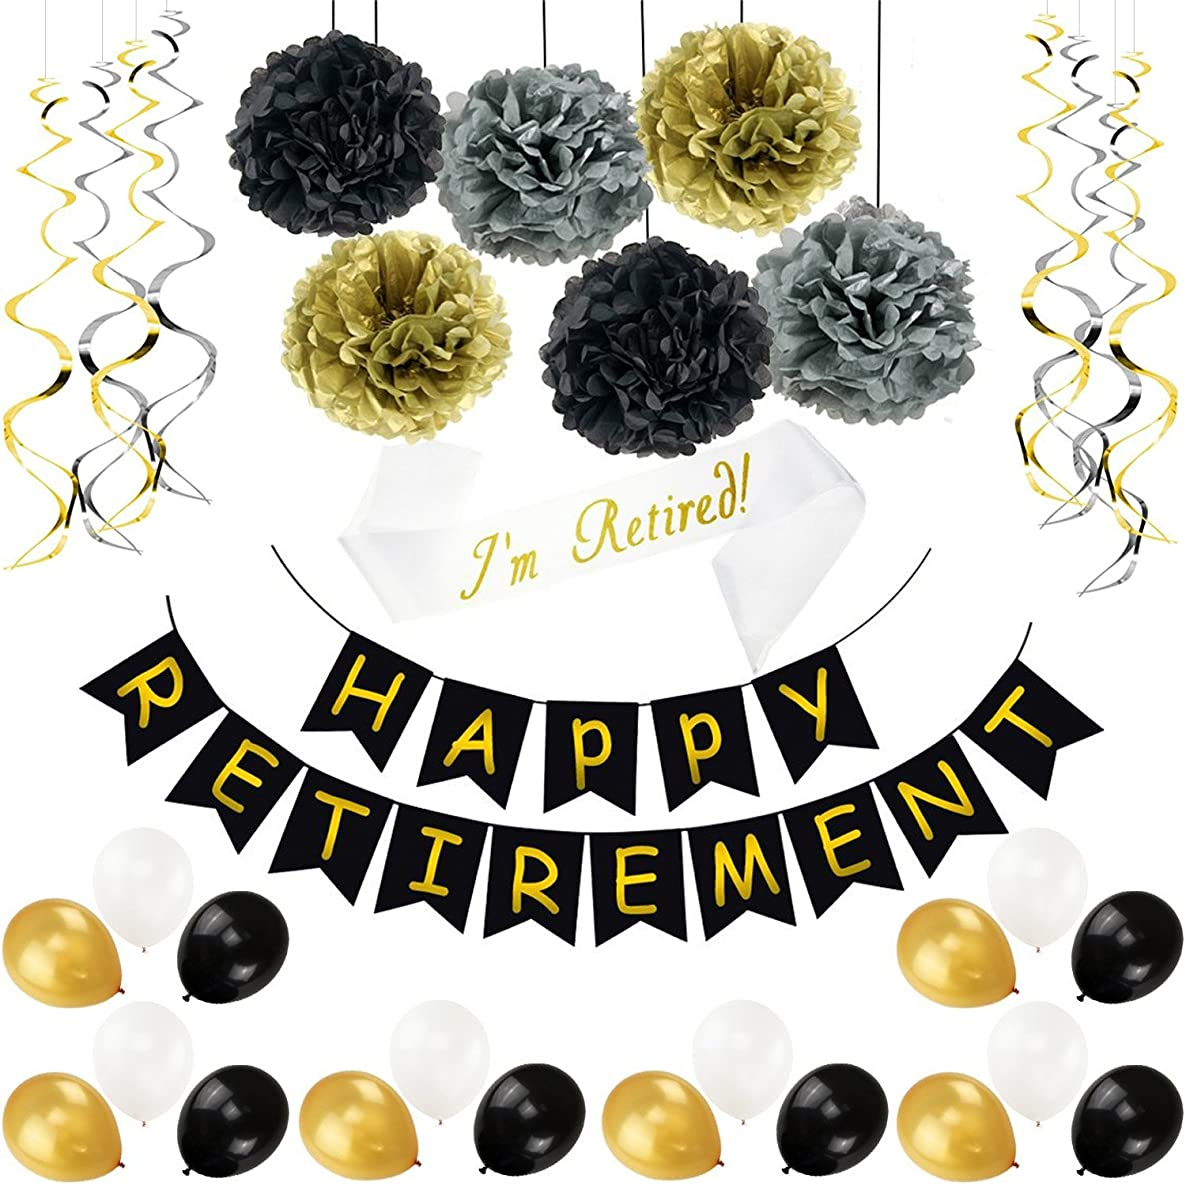 34 Pieces Retirement Celebration Banner Bunting Retired Sash Paper Pom Poms Foil Ideal Latex Balloons for Retirement Party Supplies Favors Gifts Decorations